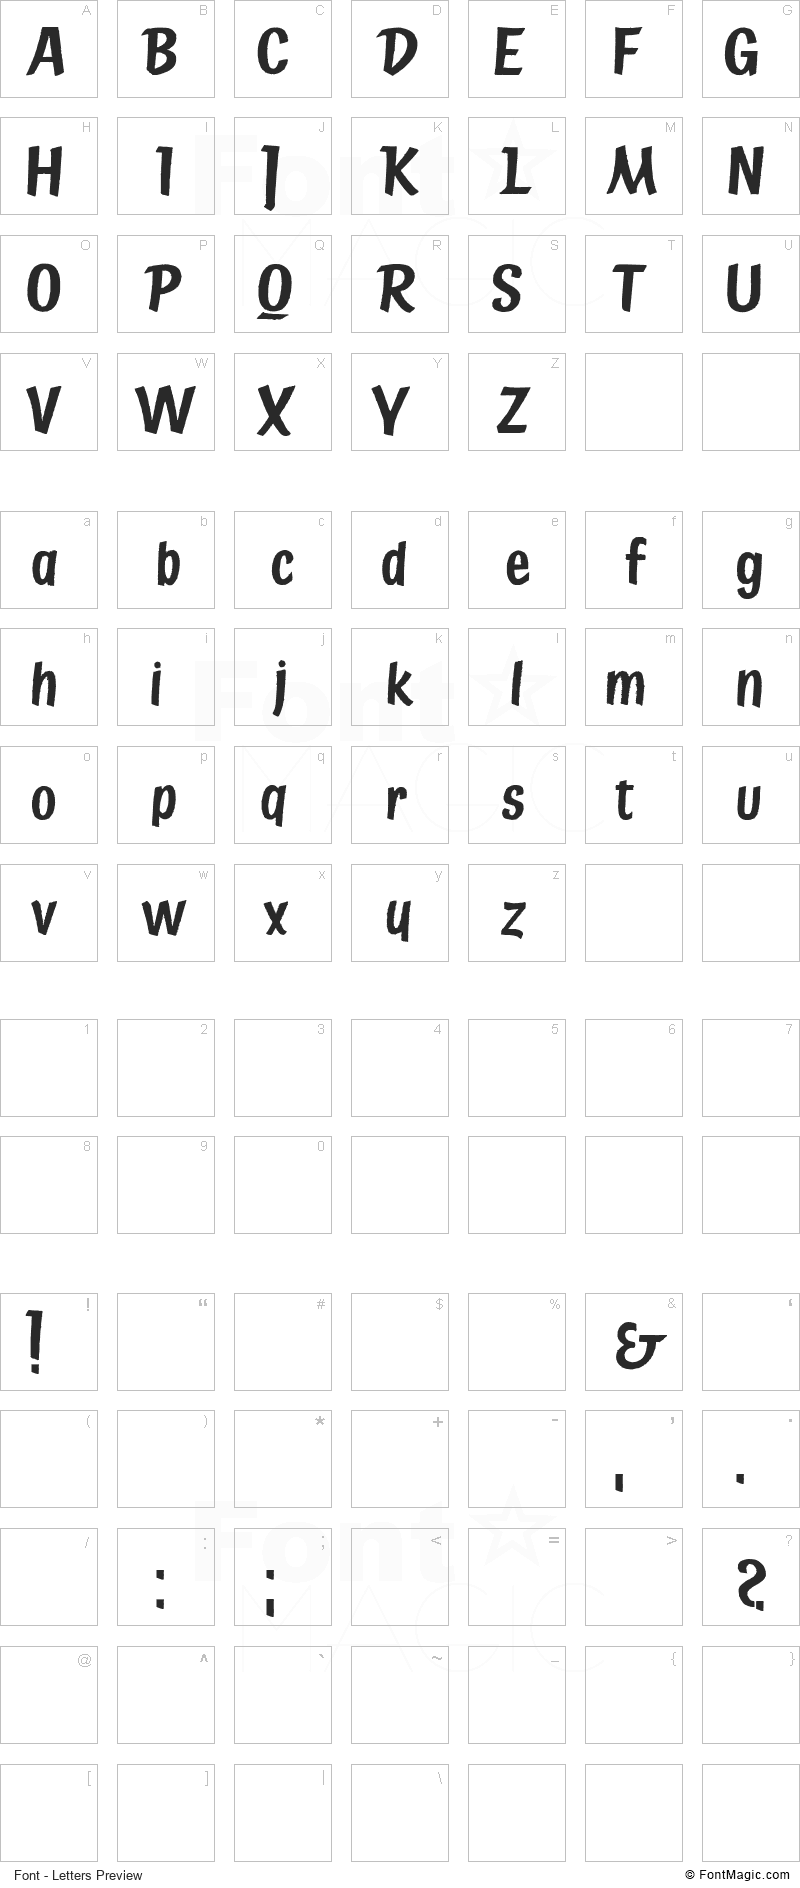 State Bridge Font - All Latters Preview Chart